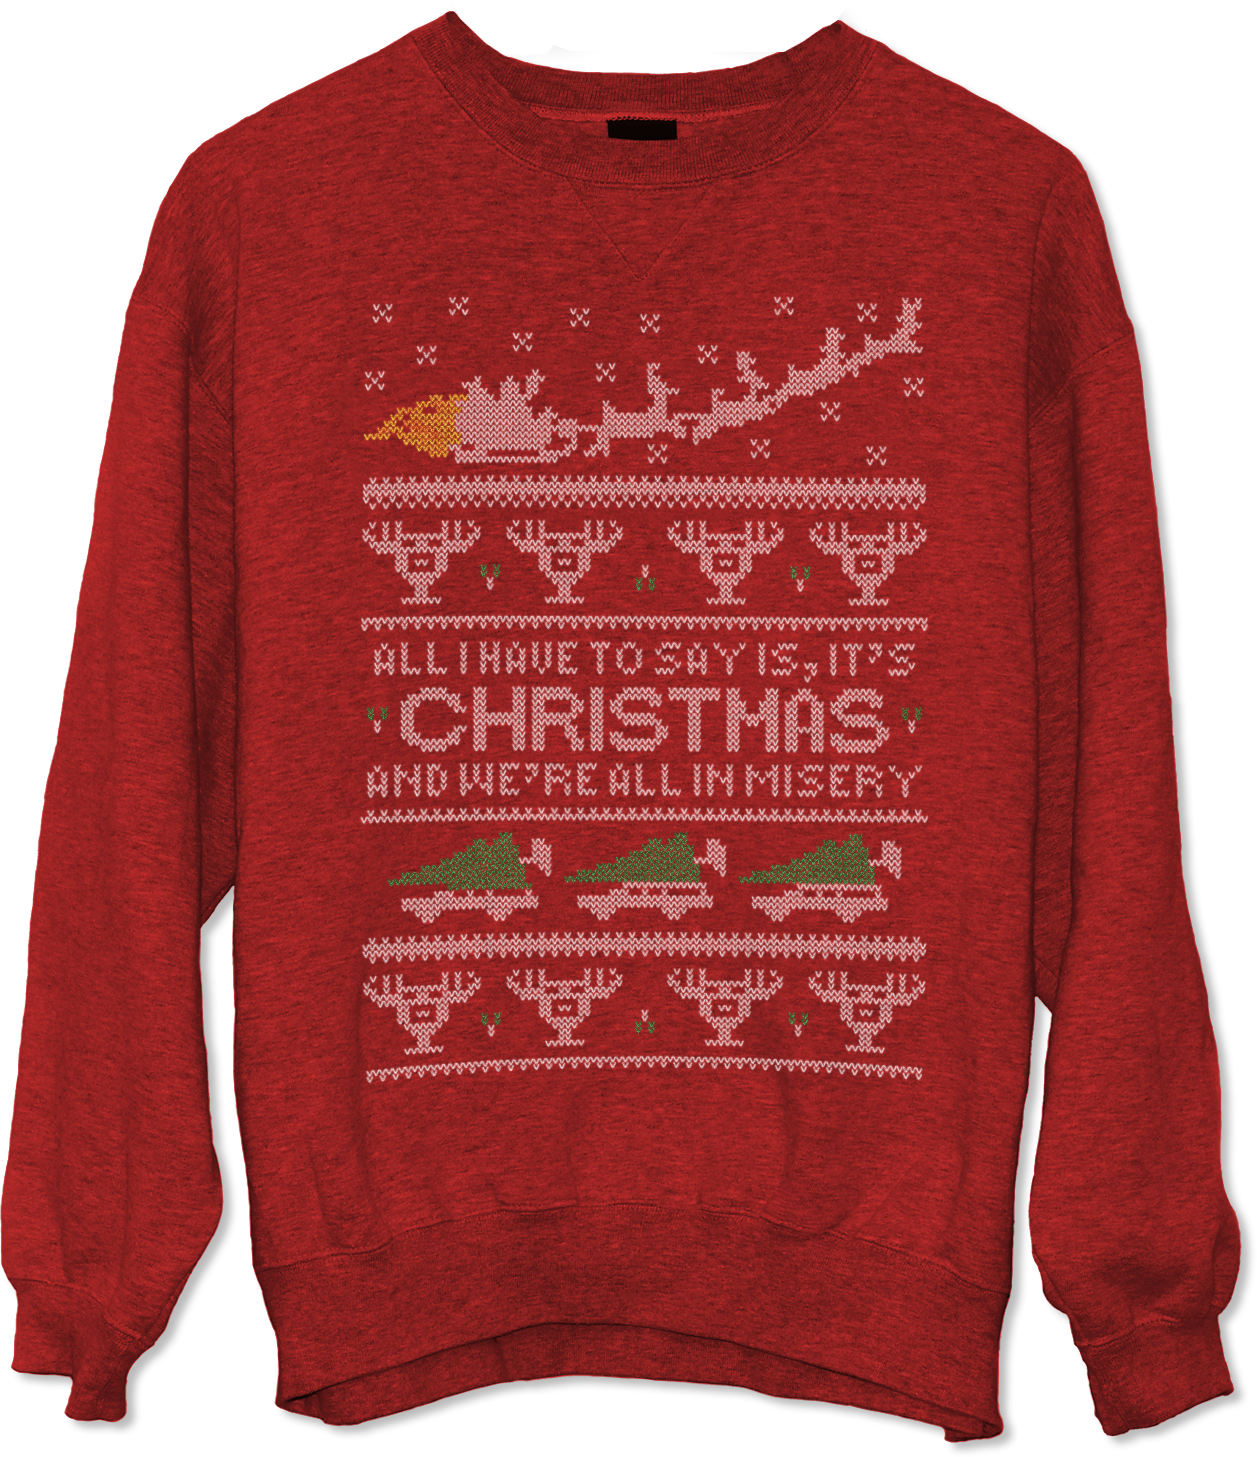 National Lampoon's Christmas Vacation Misery Ugly Christmas Sweater Jlane Design Teepublic